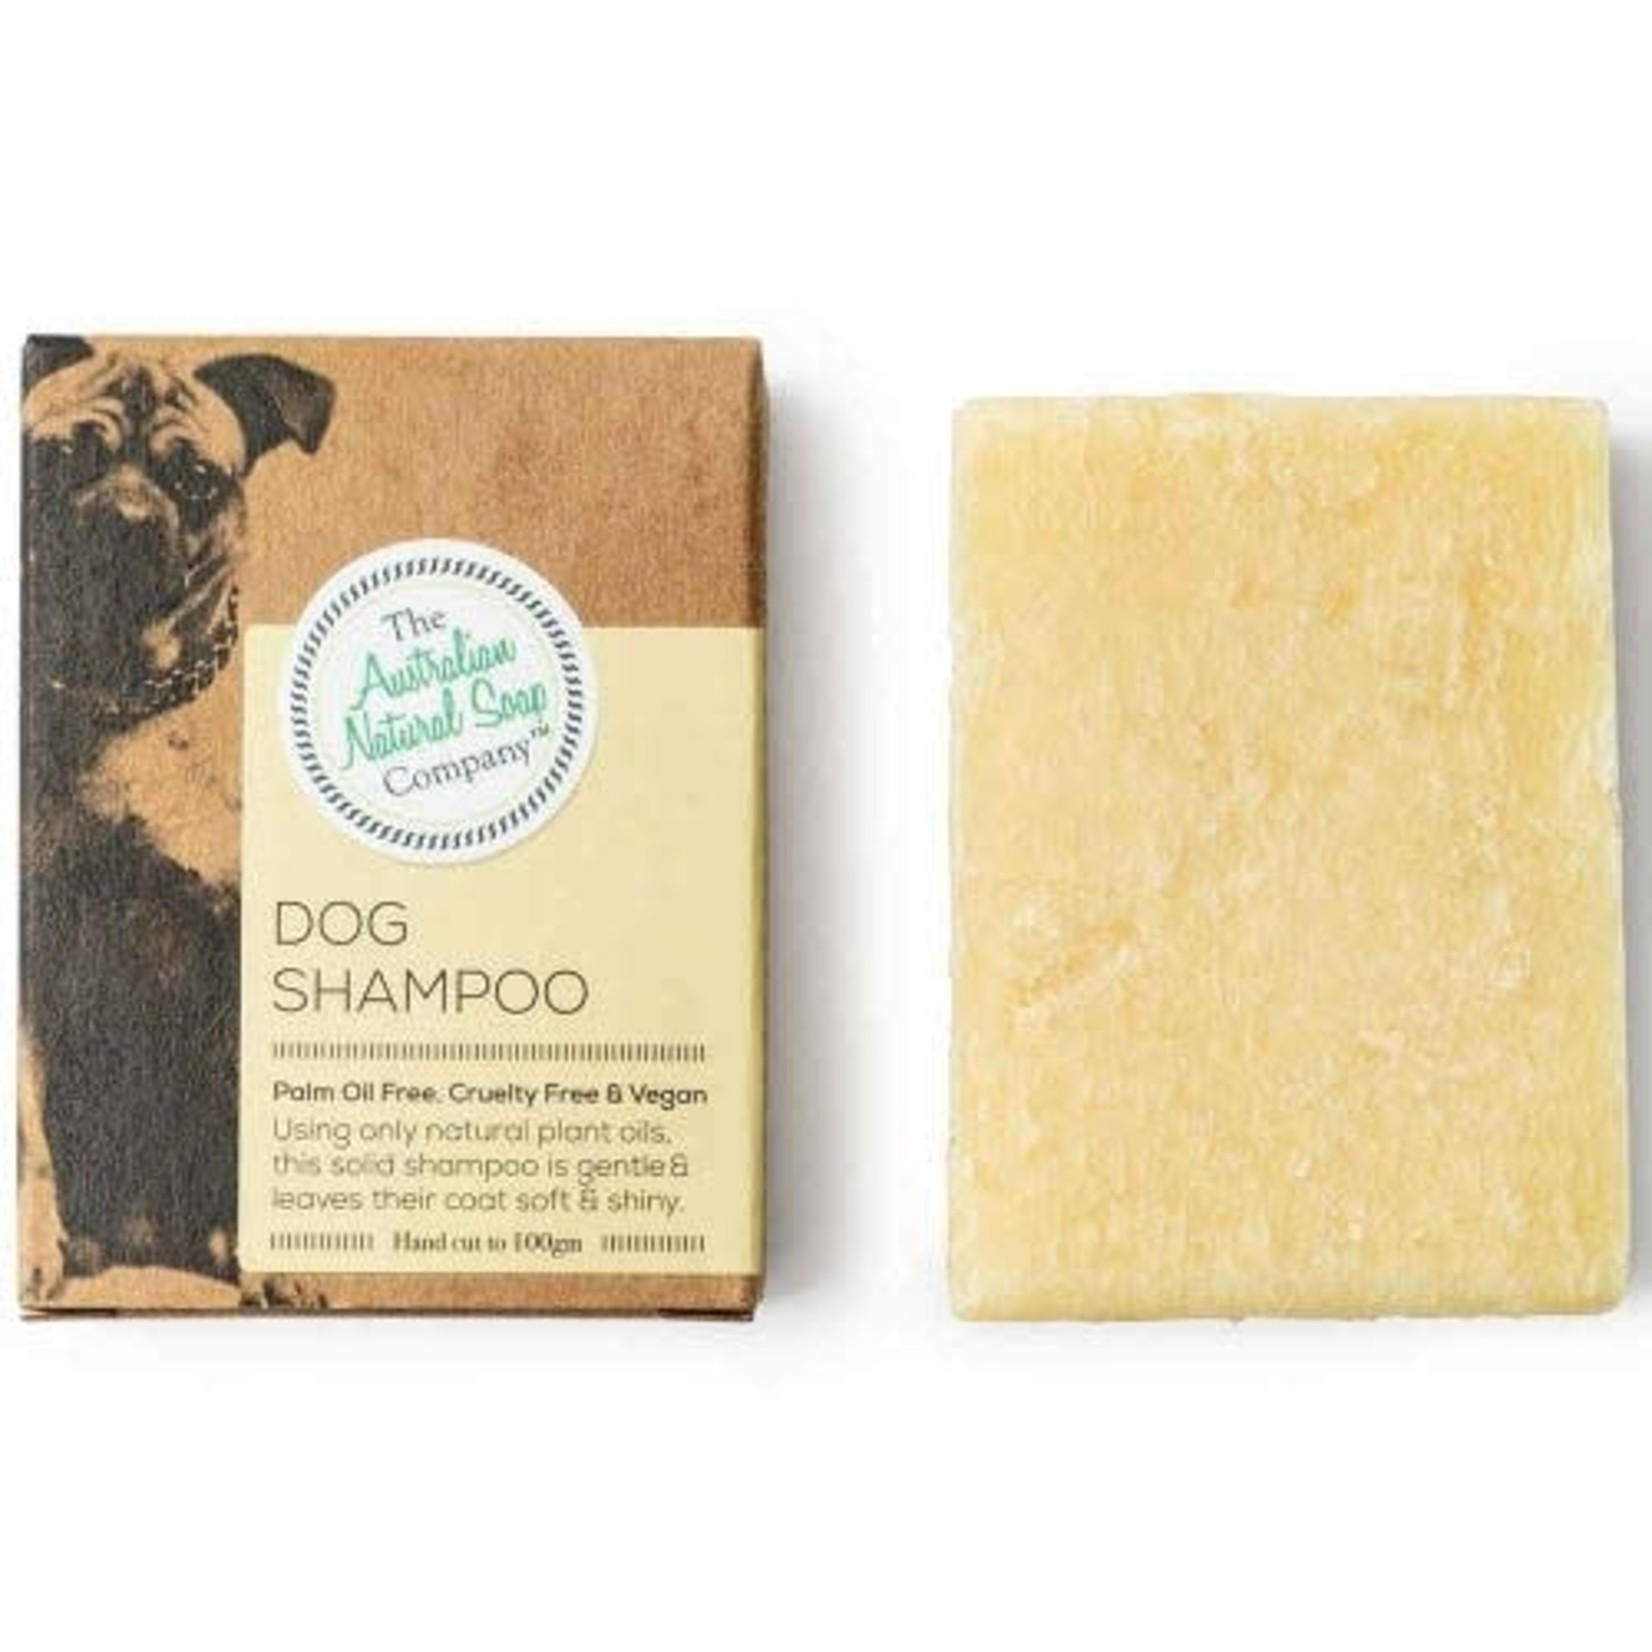 The Australian Natural Soap Company The Australian Natural Soap Company Shampoo Bar Dog